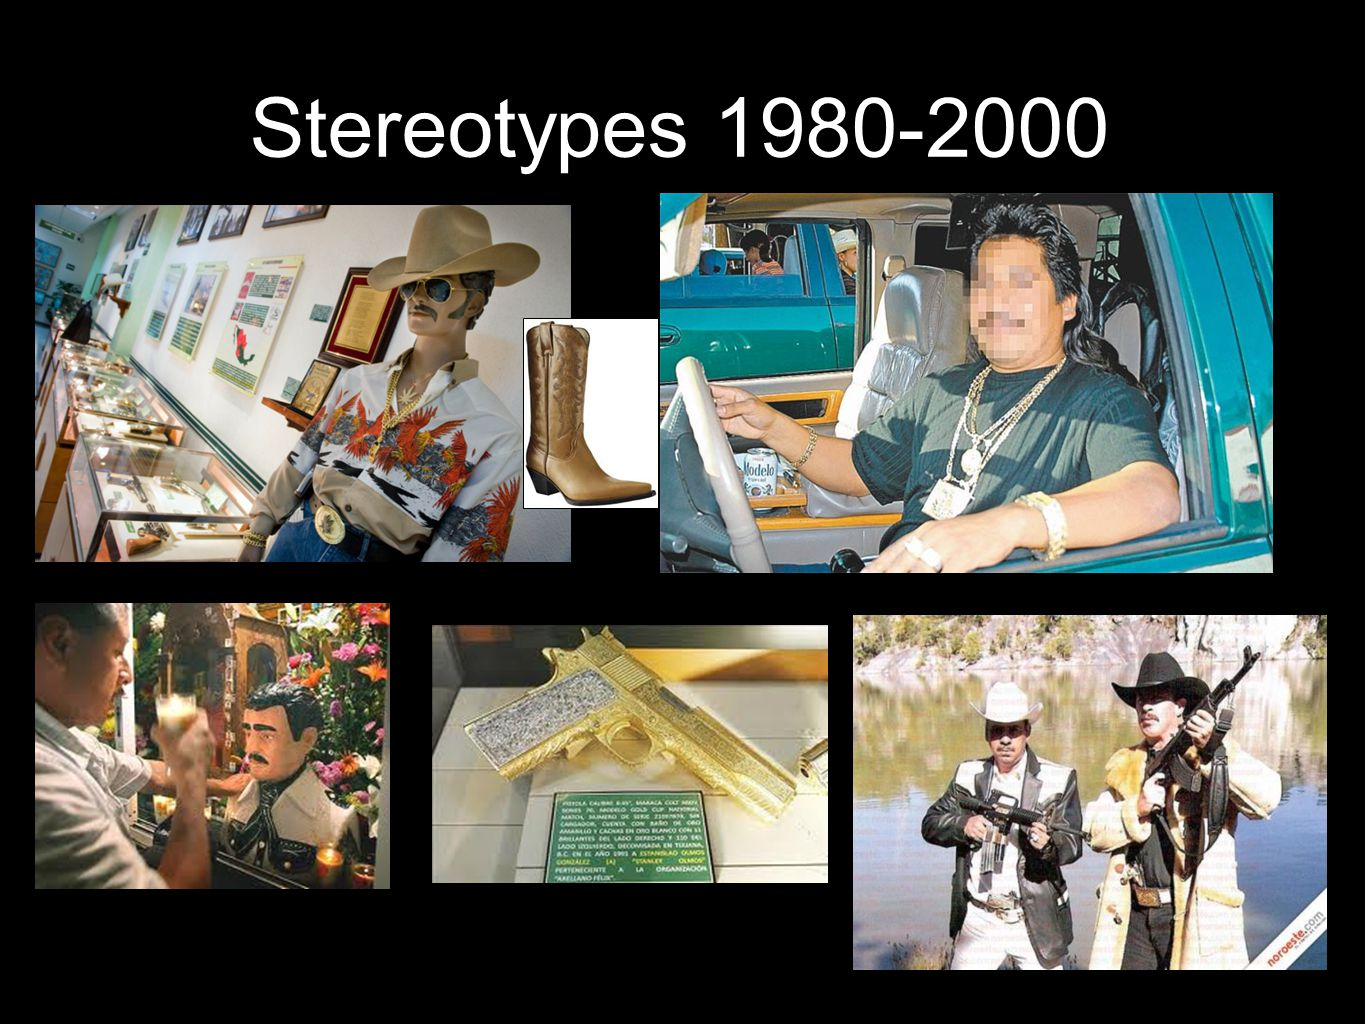 Stereotypes 1980-2000